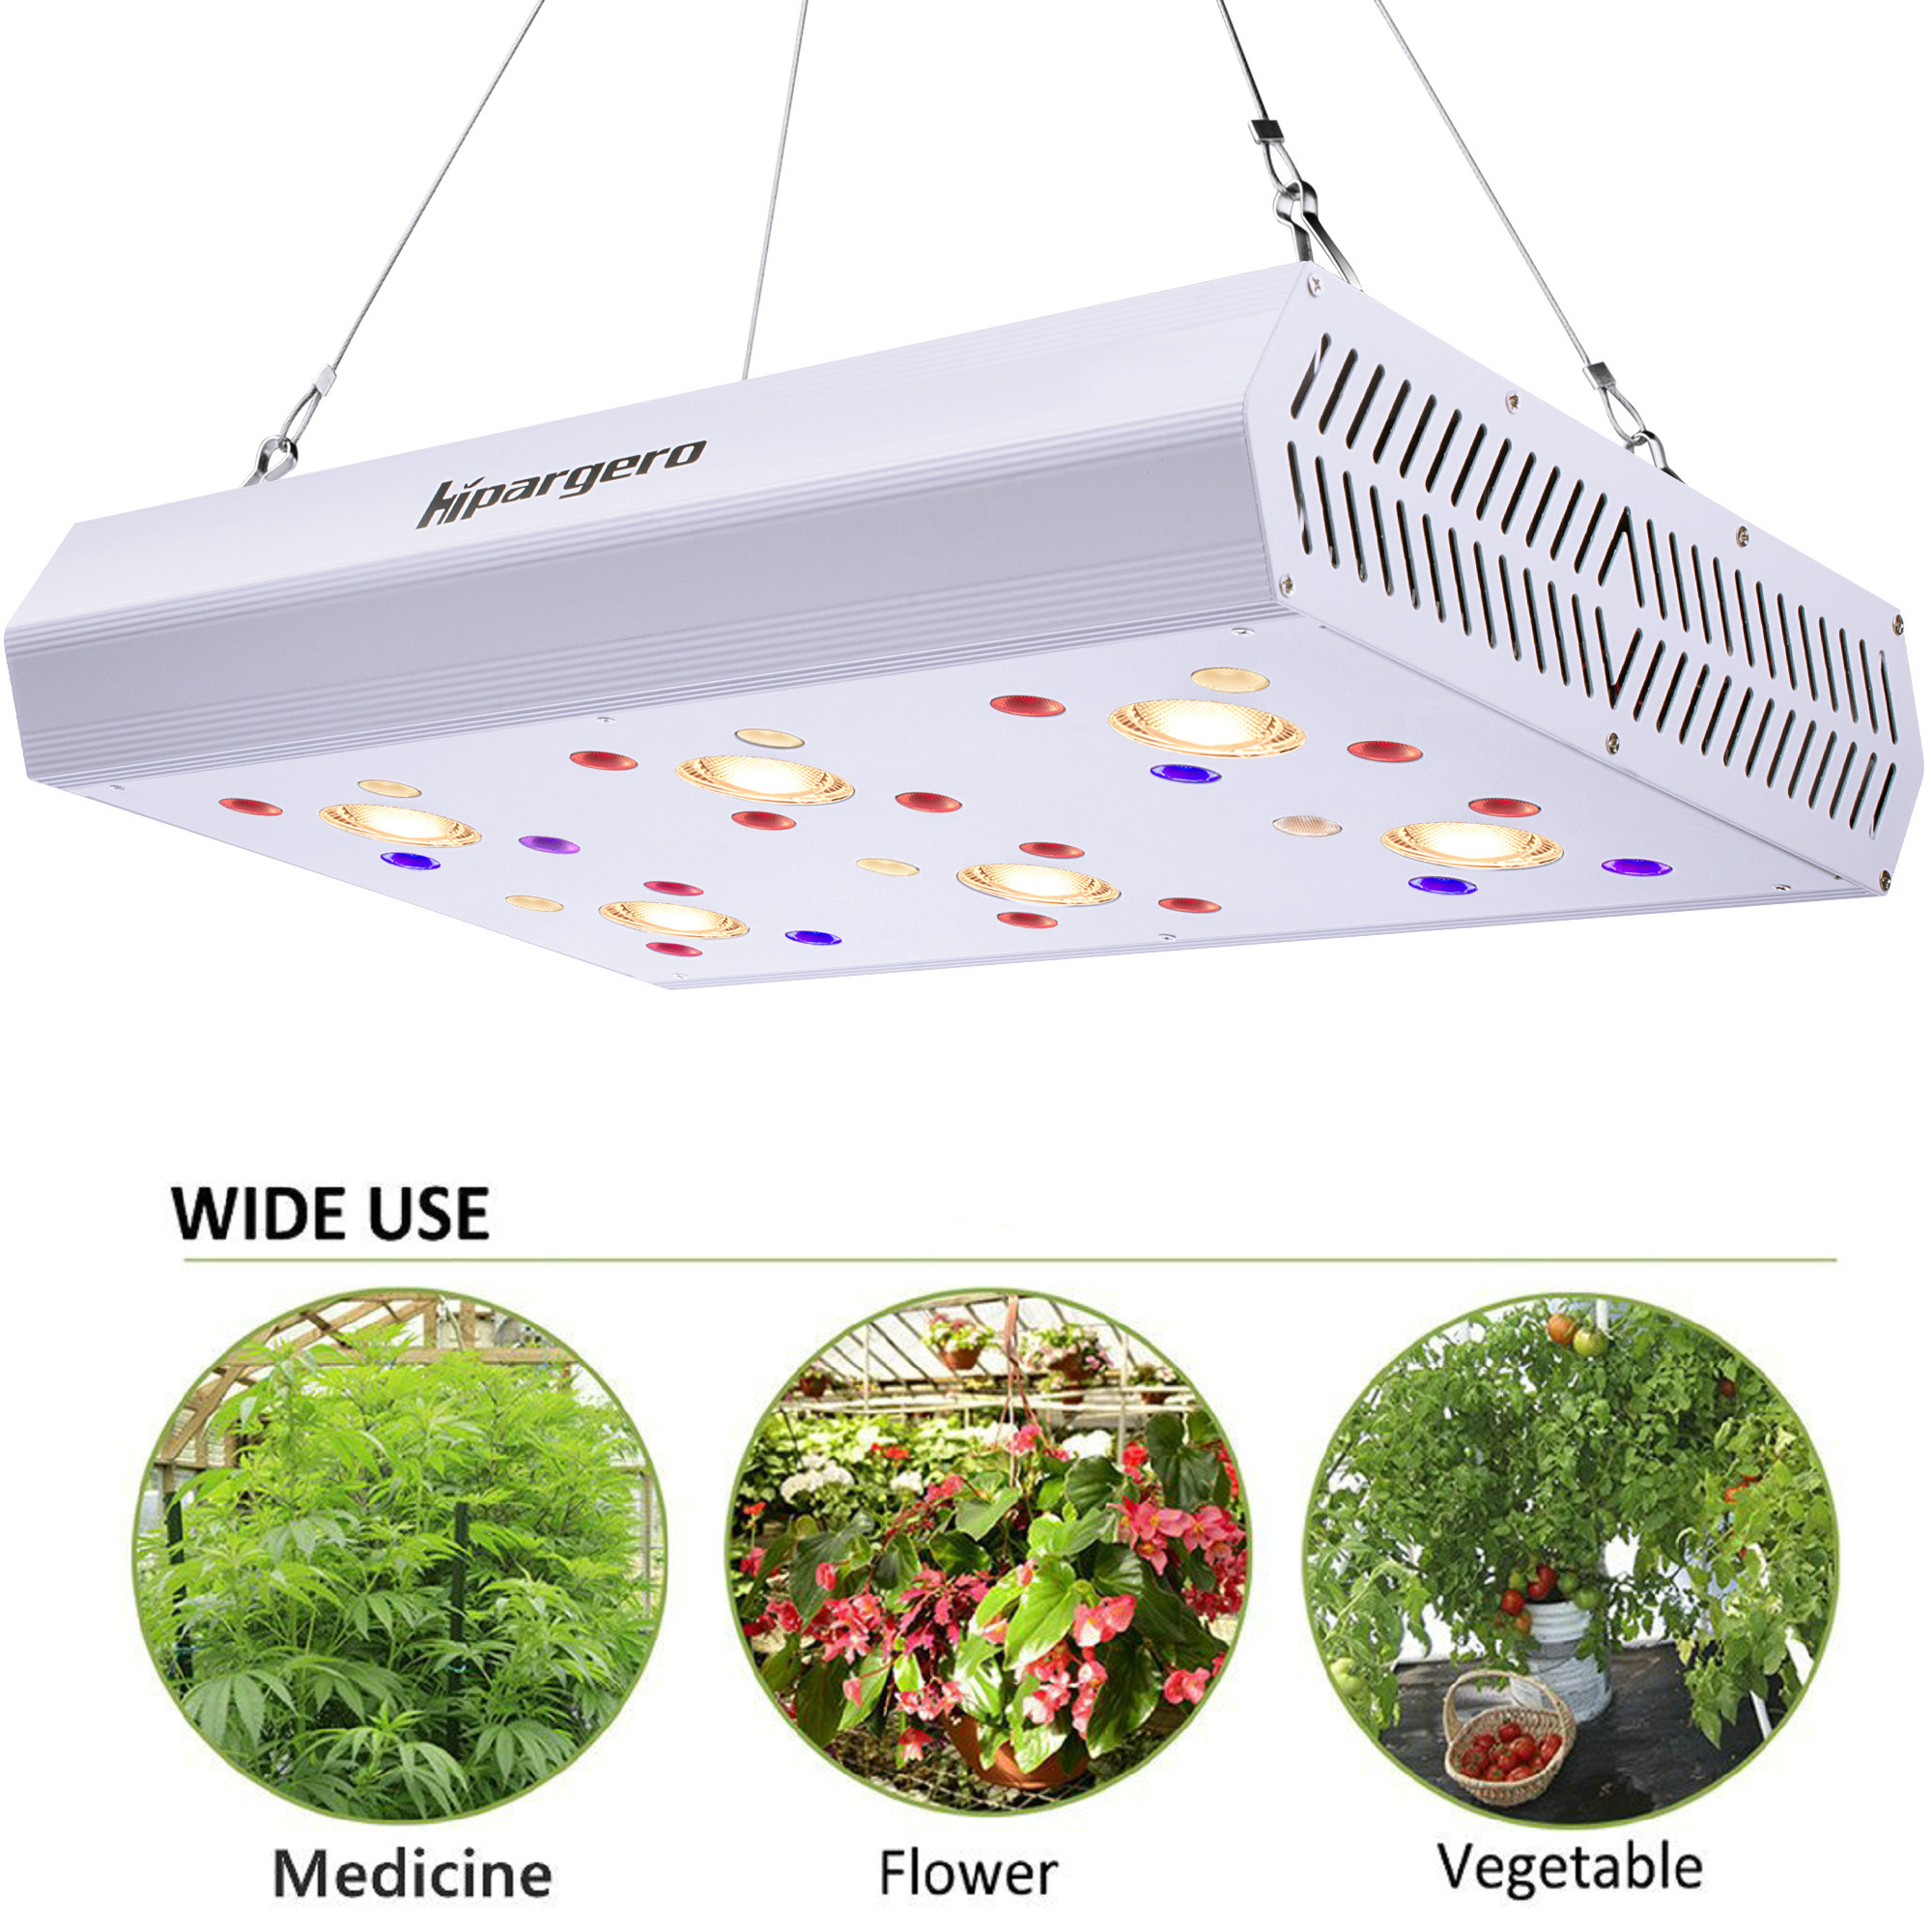 1200W LED Grow Light Full Spectrum Grow Lamp 3000K COBs 3W Chips UV IR Daisy Chain Greenhouse Hydroponics Indoor Plant Lighting